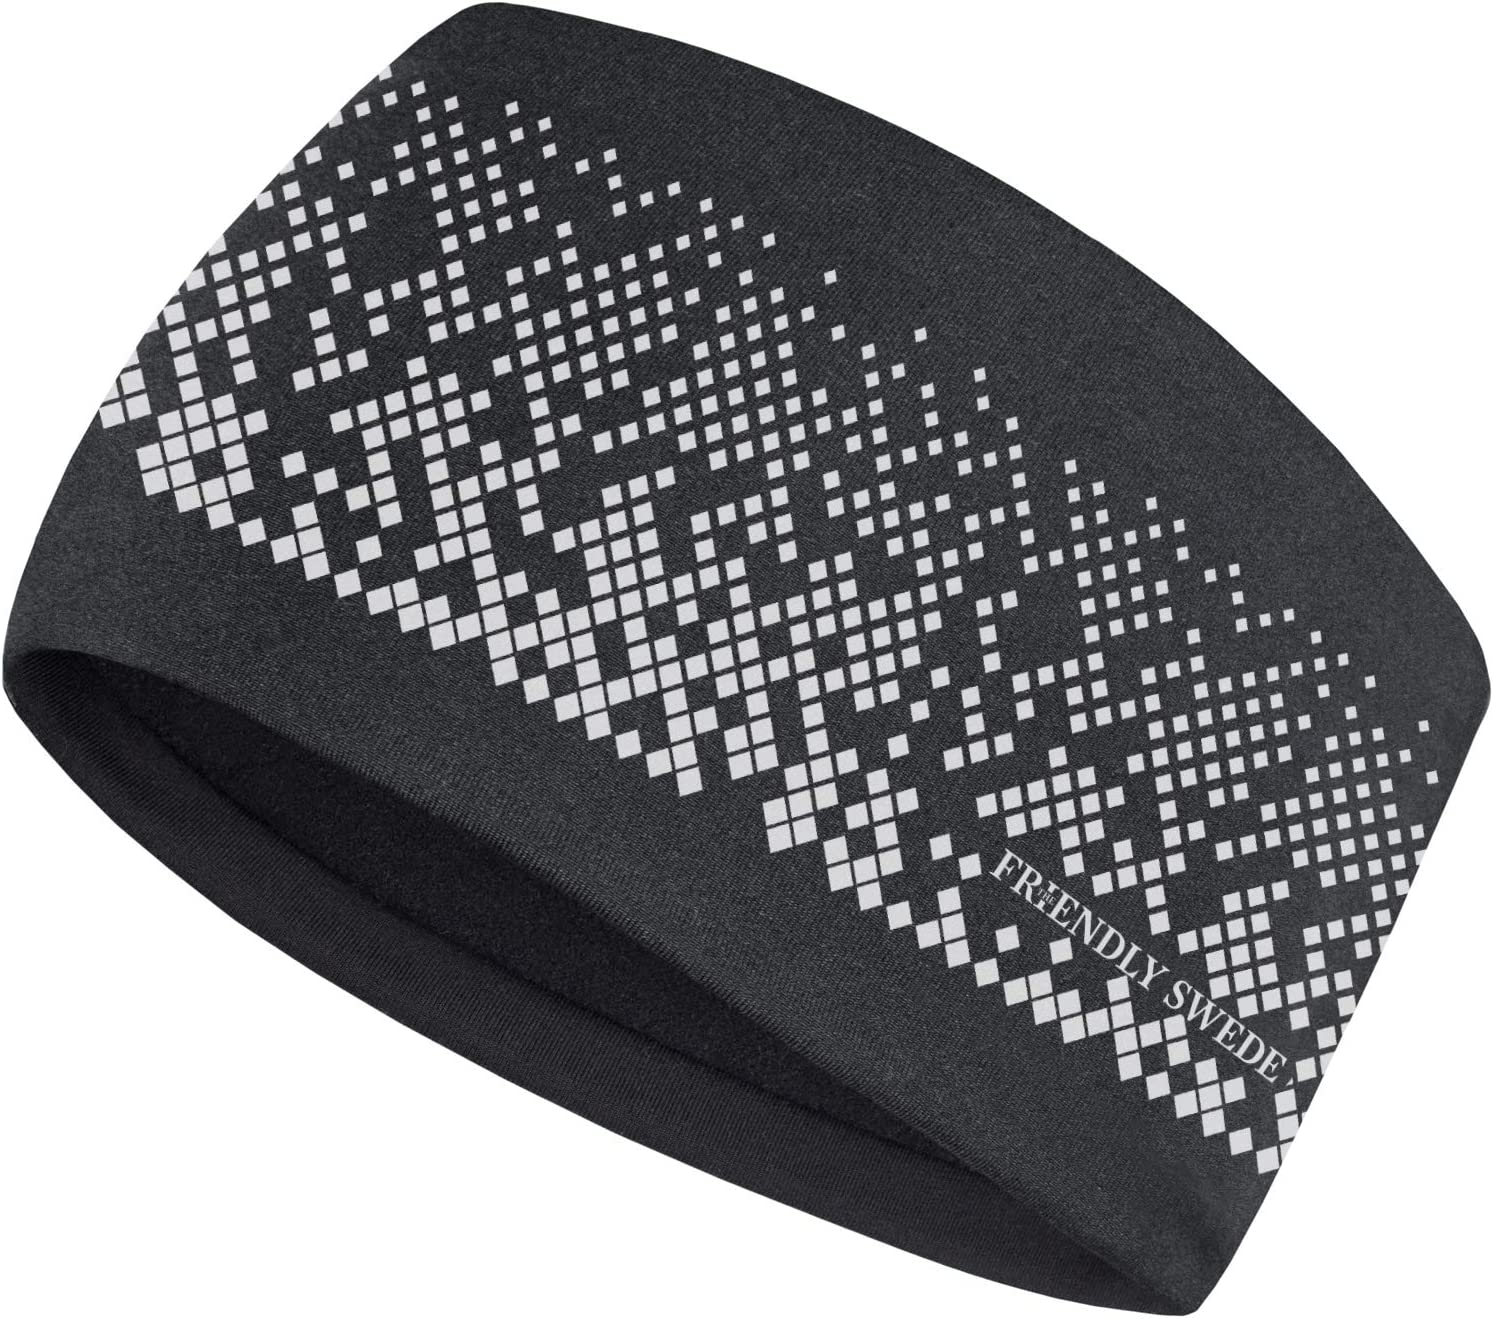 The Friendly Swede Ear Warmer Sales of SALE items from new works Headband for Cheap sale Men Extra Women and